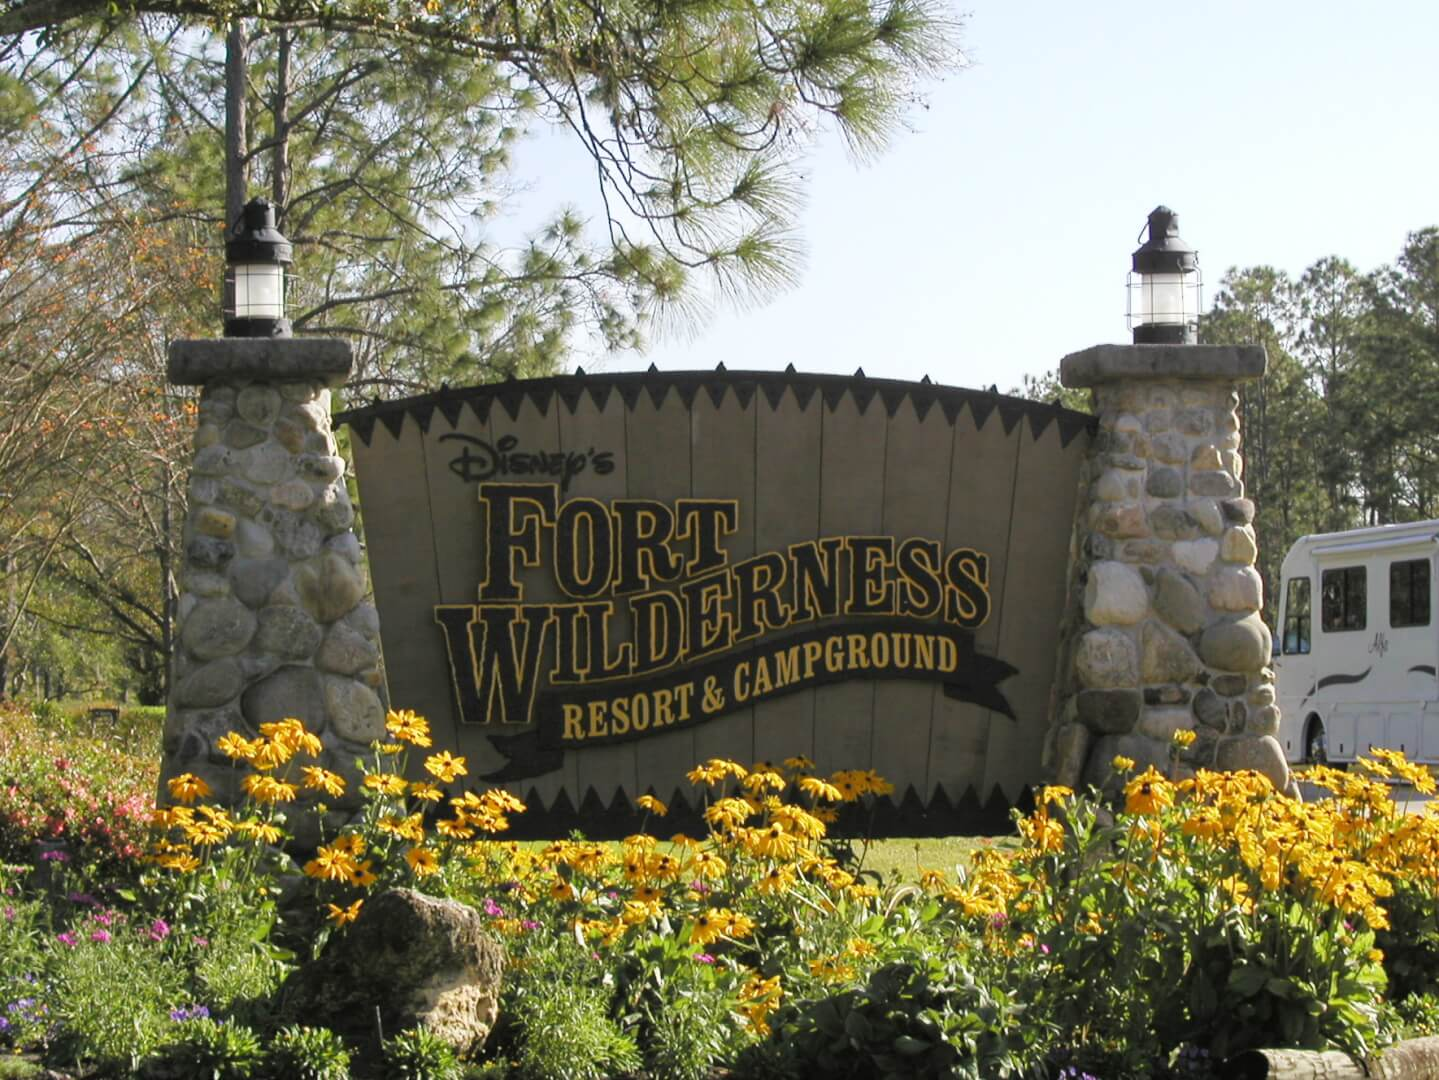 no fort wilderness is not permanently closed at walt disney world